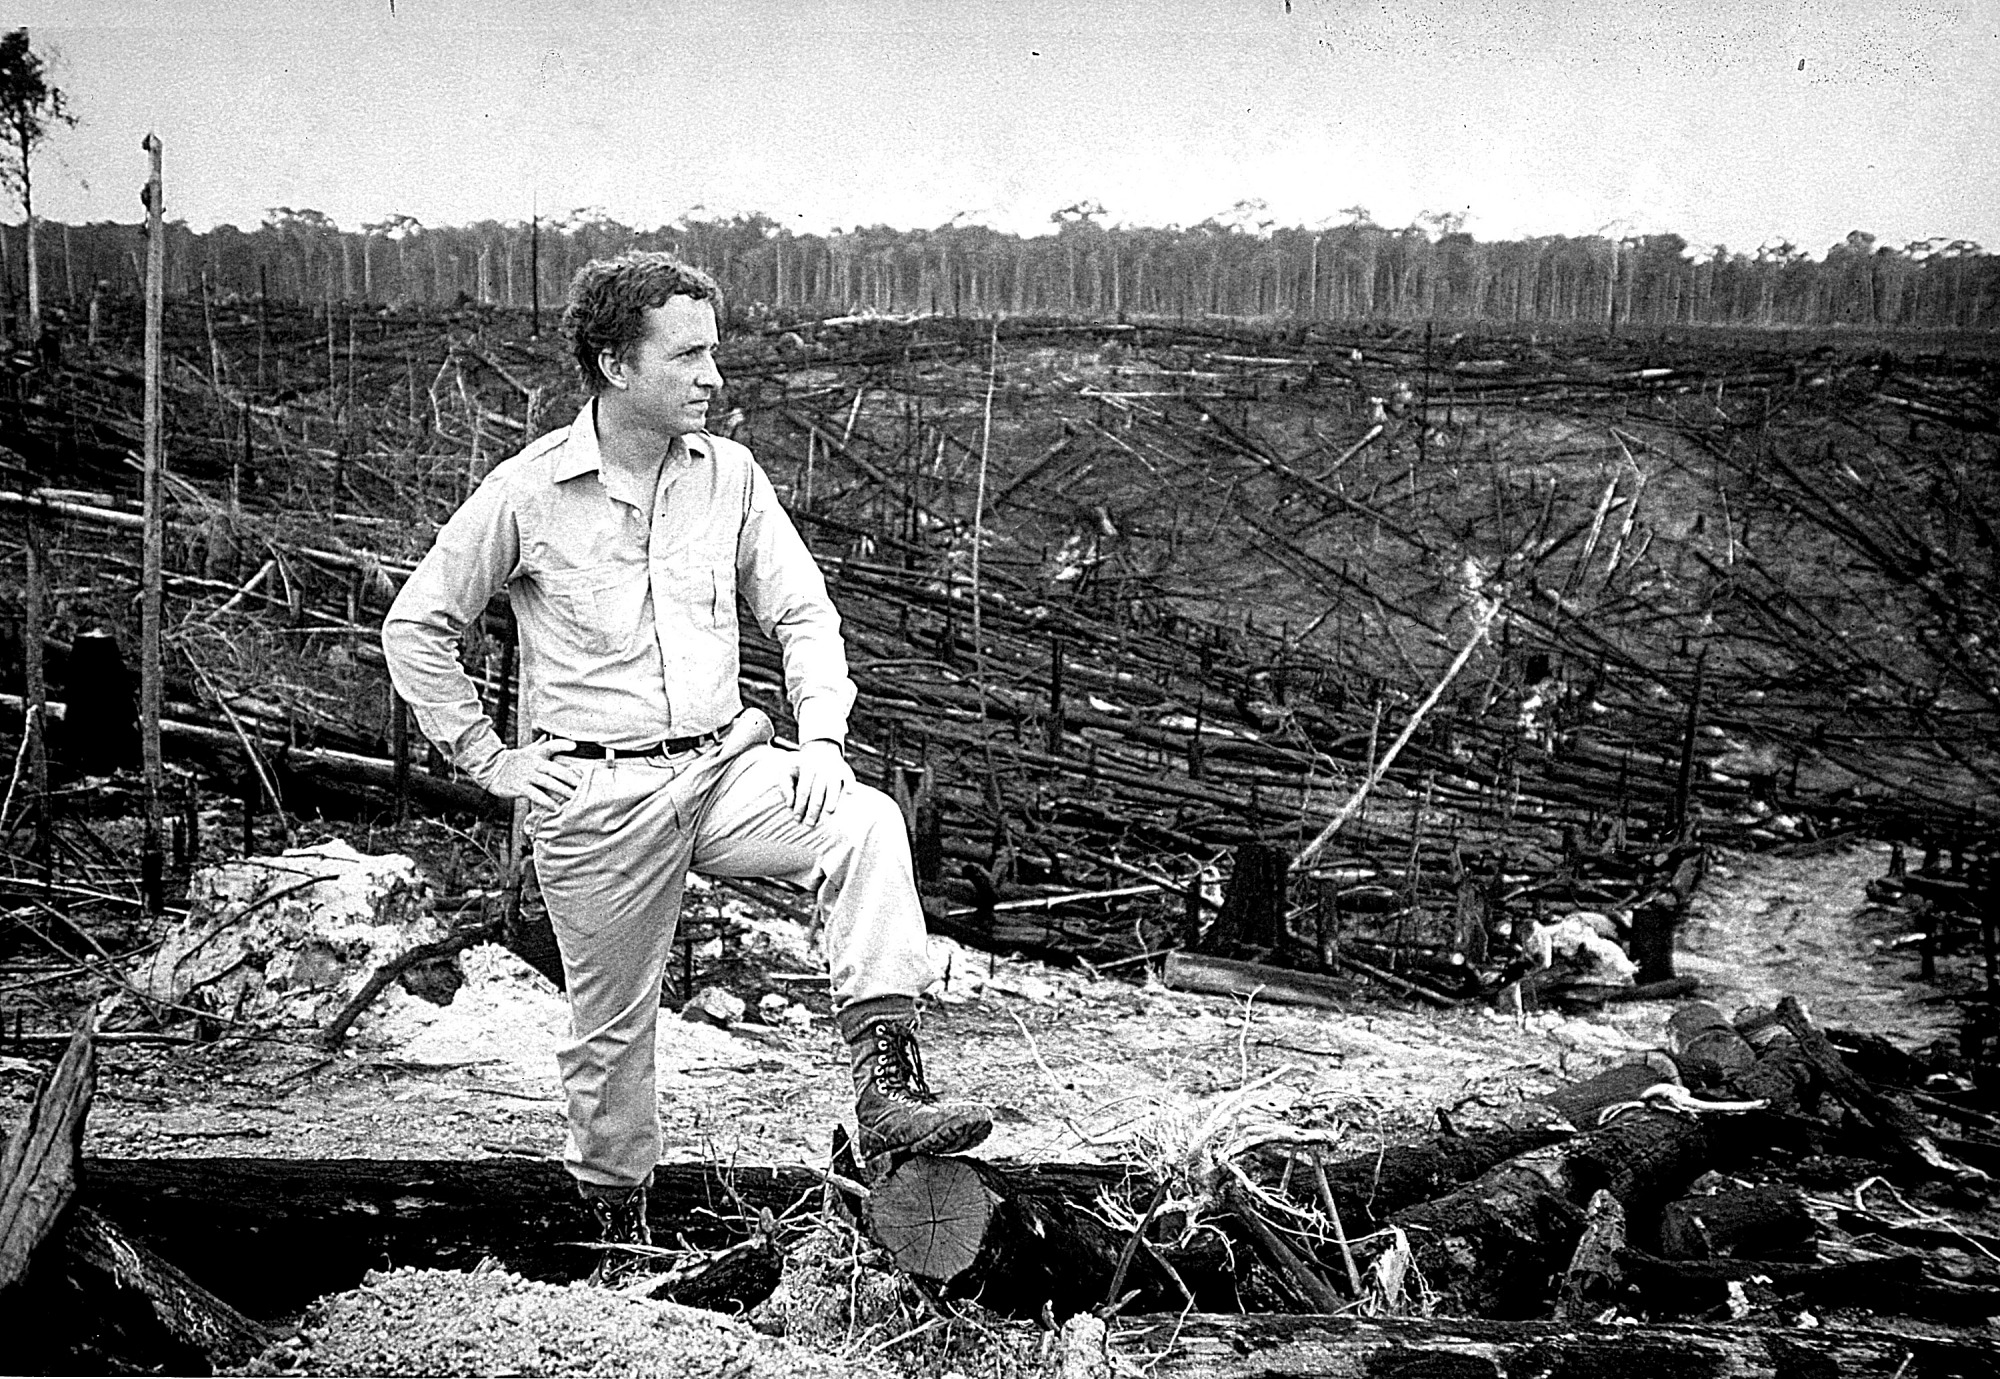 Thomas Lovejoy in Brazil, by Bayer, Wolfgang, 1986, Smithsonian Archives - History Div, 2002-32304.